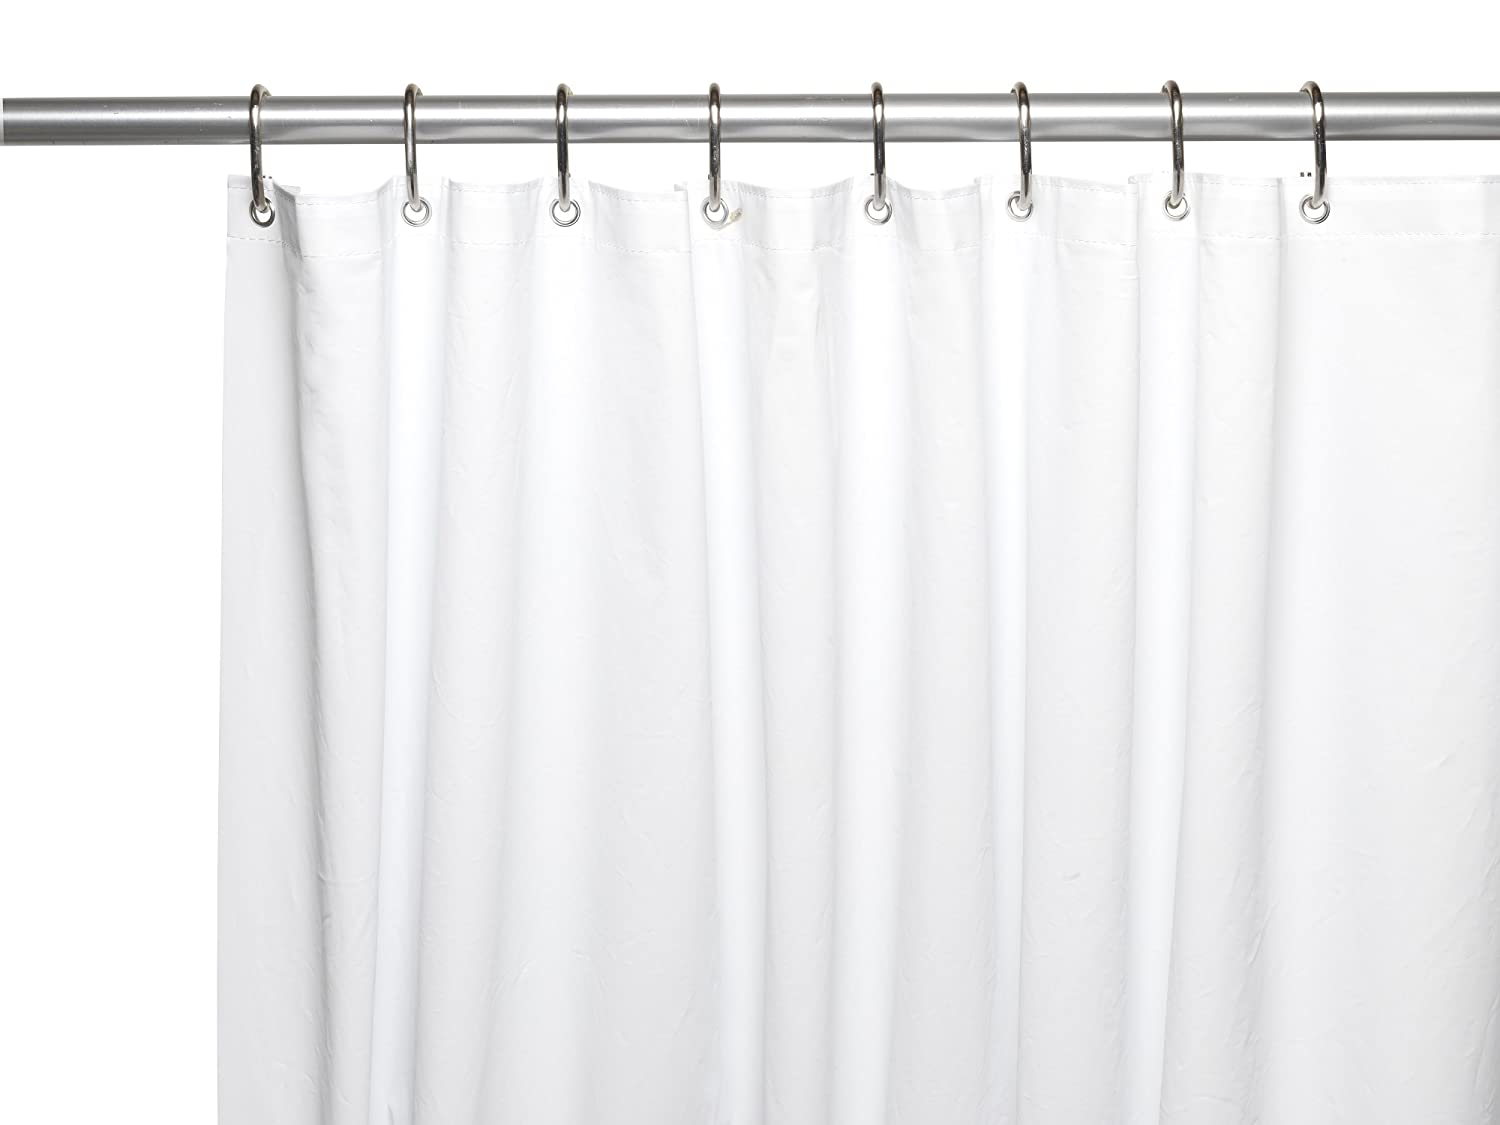 Amazon Ben Jonah Extra Long And Heavy 10 Gauge PEVA Non Toxic Shower Curtain Liner With Metal Grommets 72 X 84 Super Clear Home Kitchen